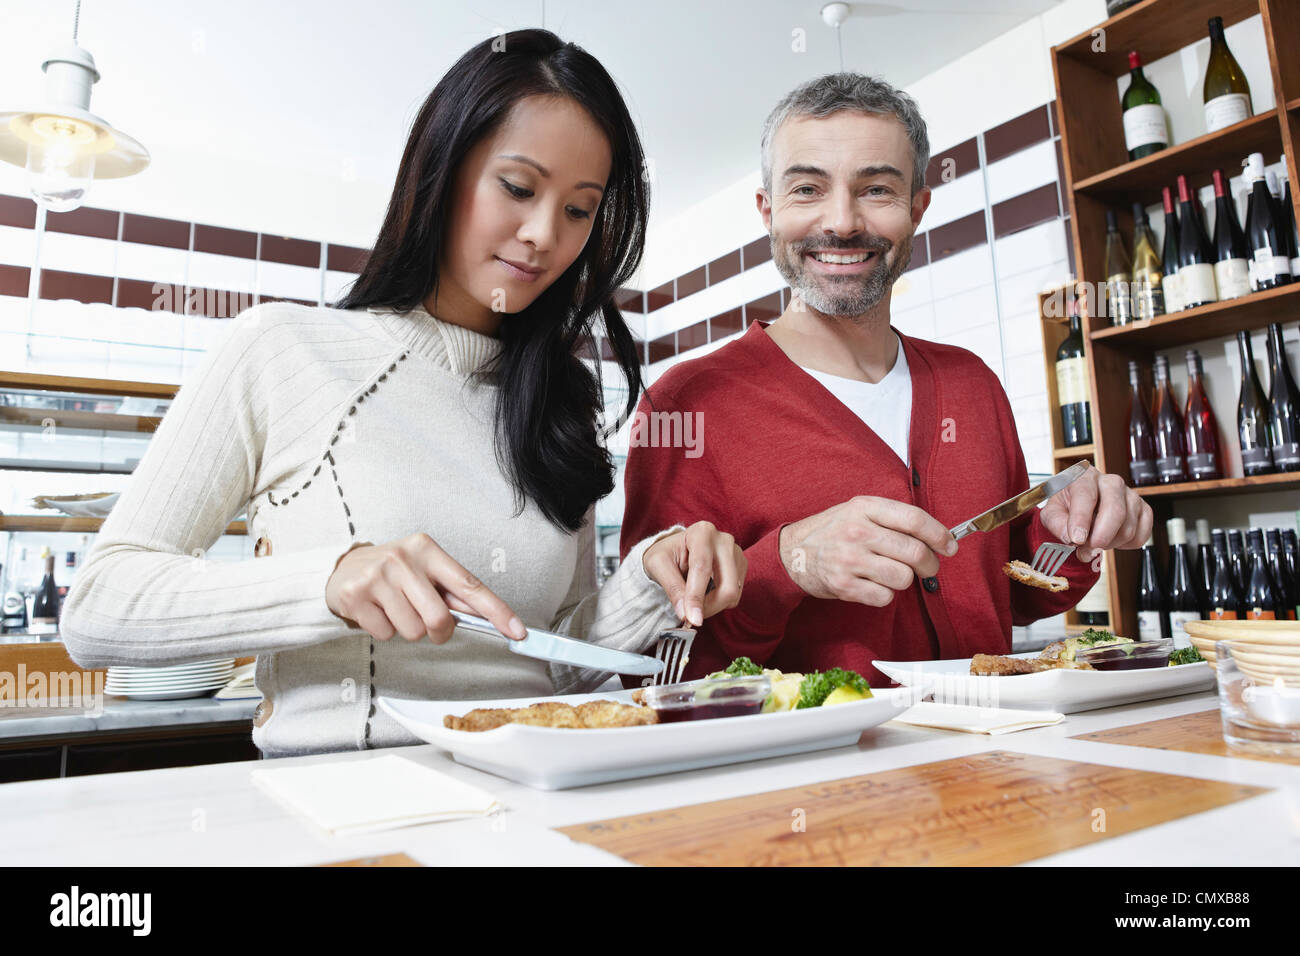 Germany, Cologne, Couple eating food in kitchen, smiling - Stock Image